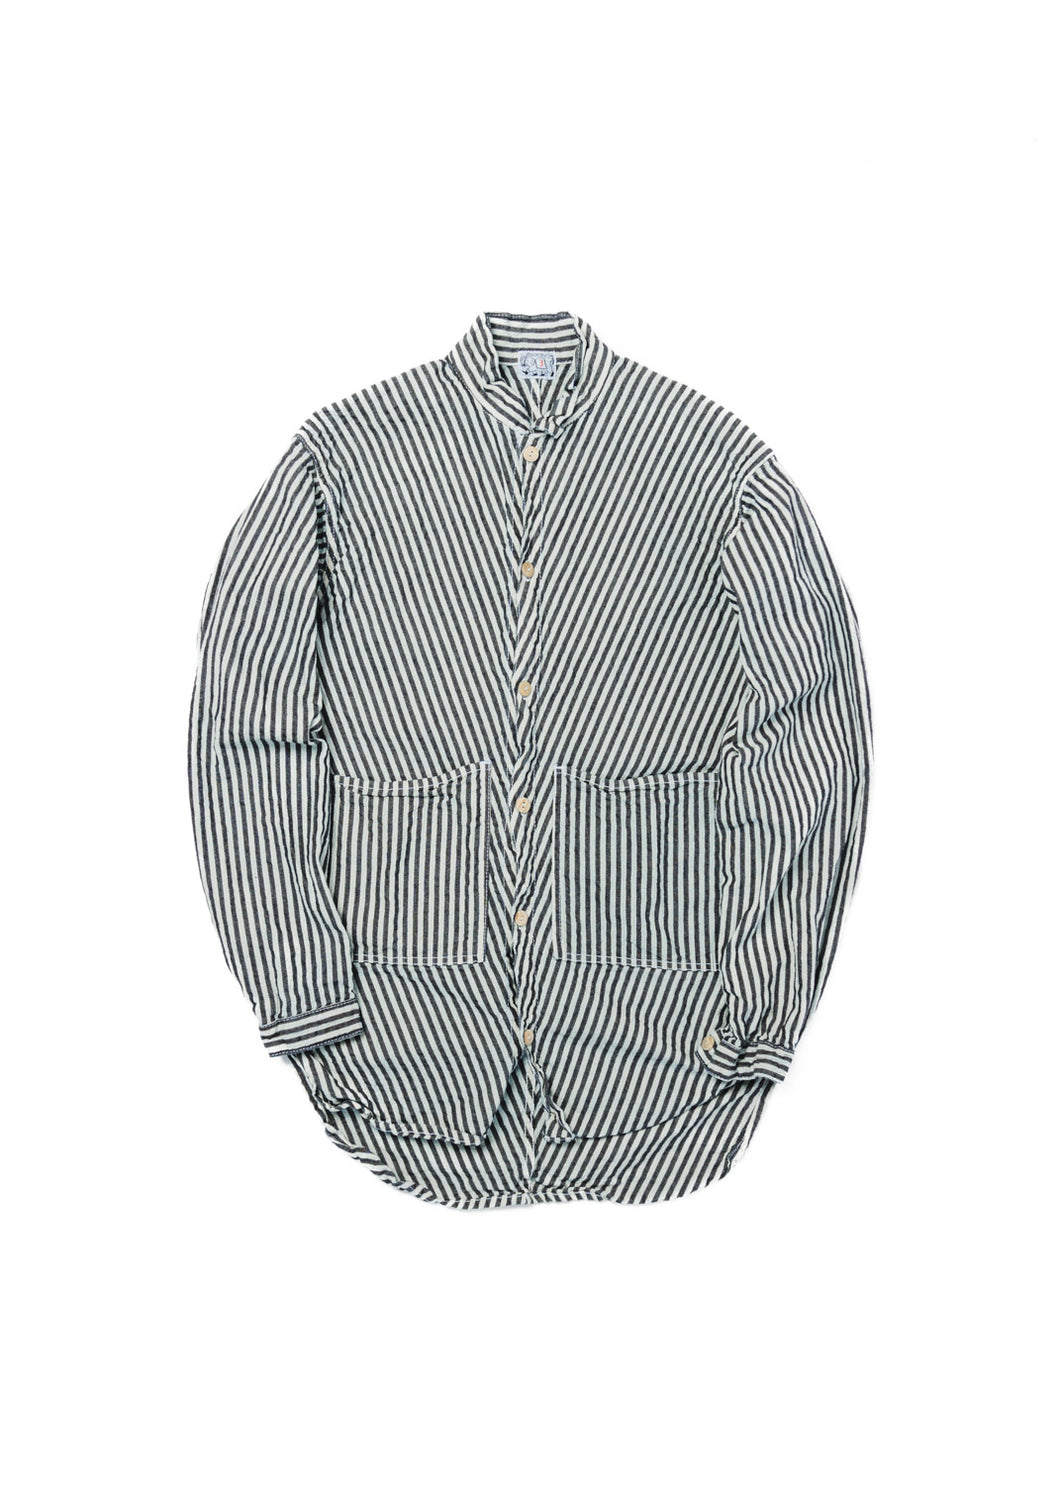 TENDER TYPE 444 LONG SLEEVE BOOMERANG SHIRT